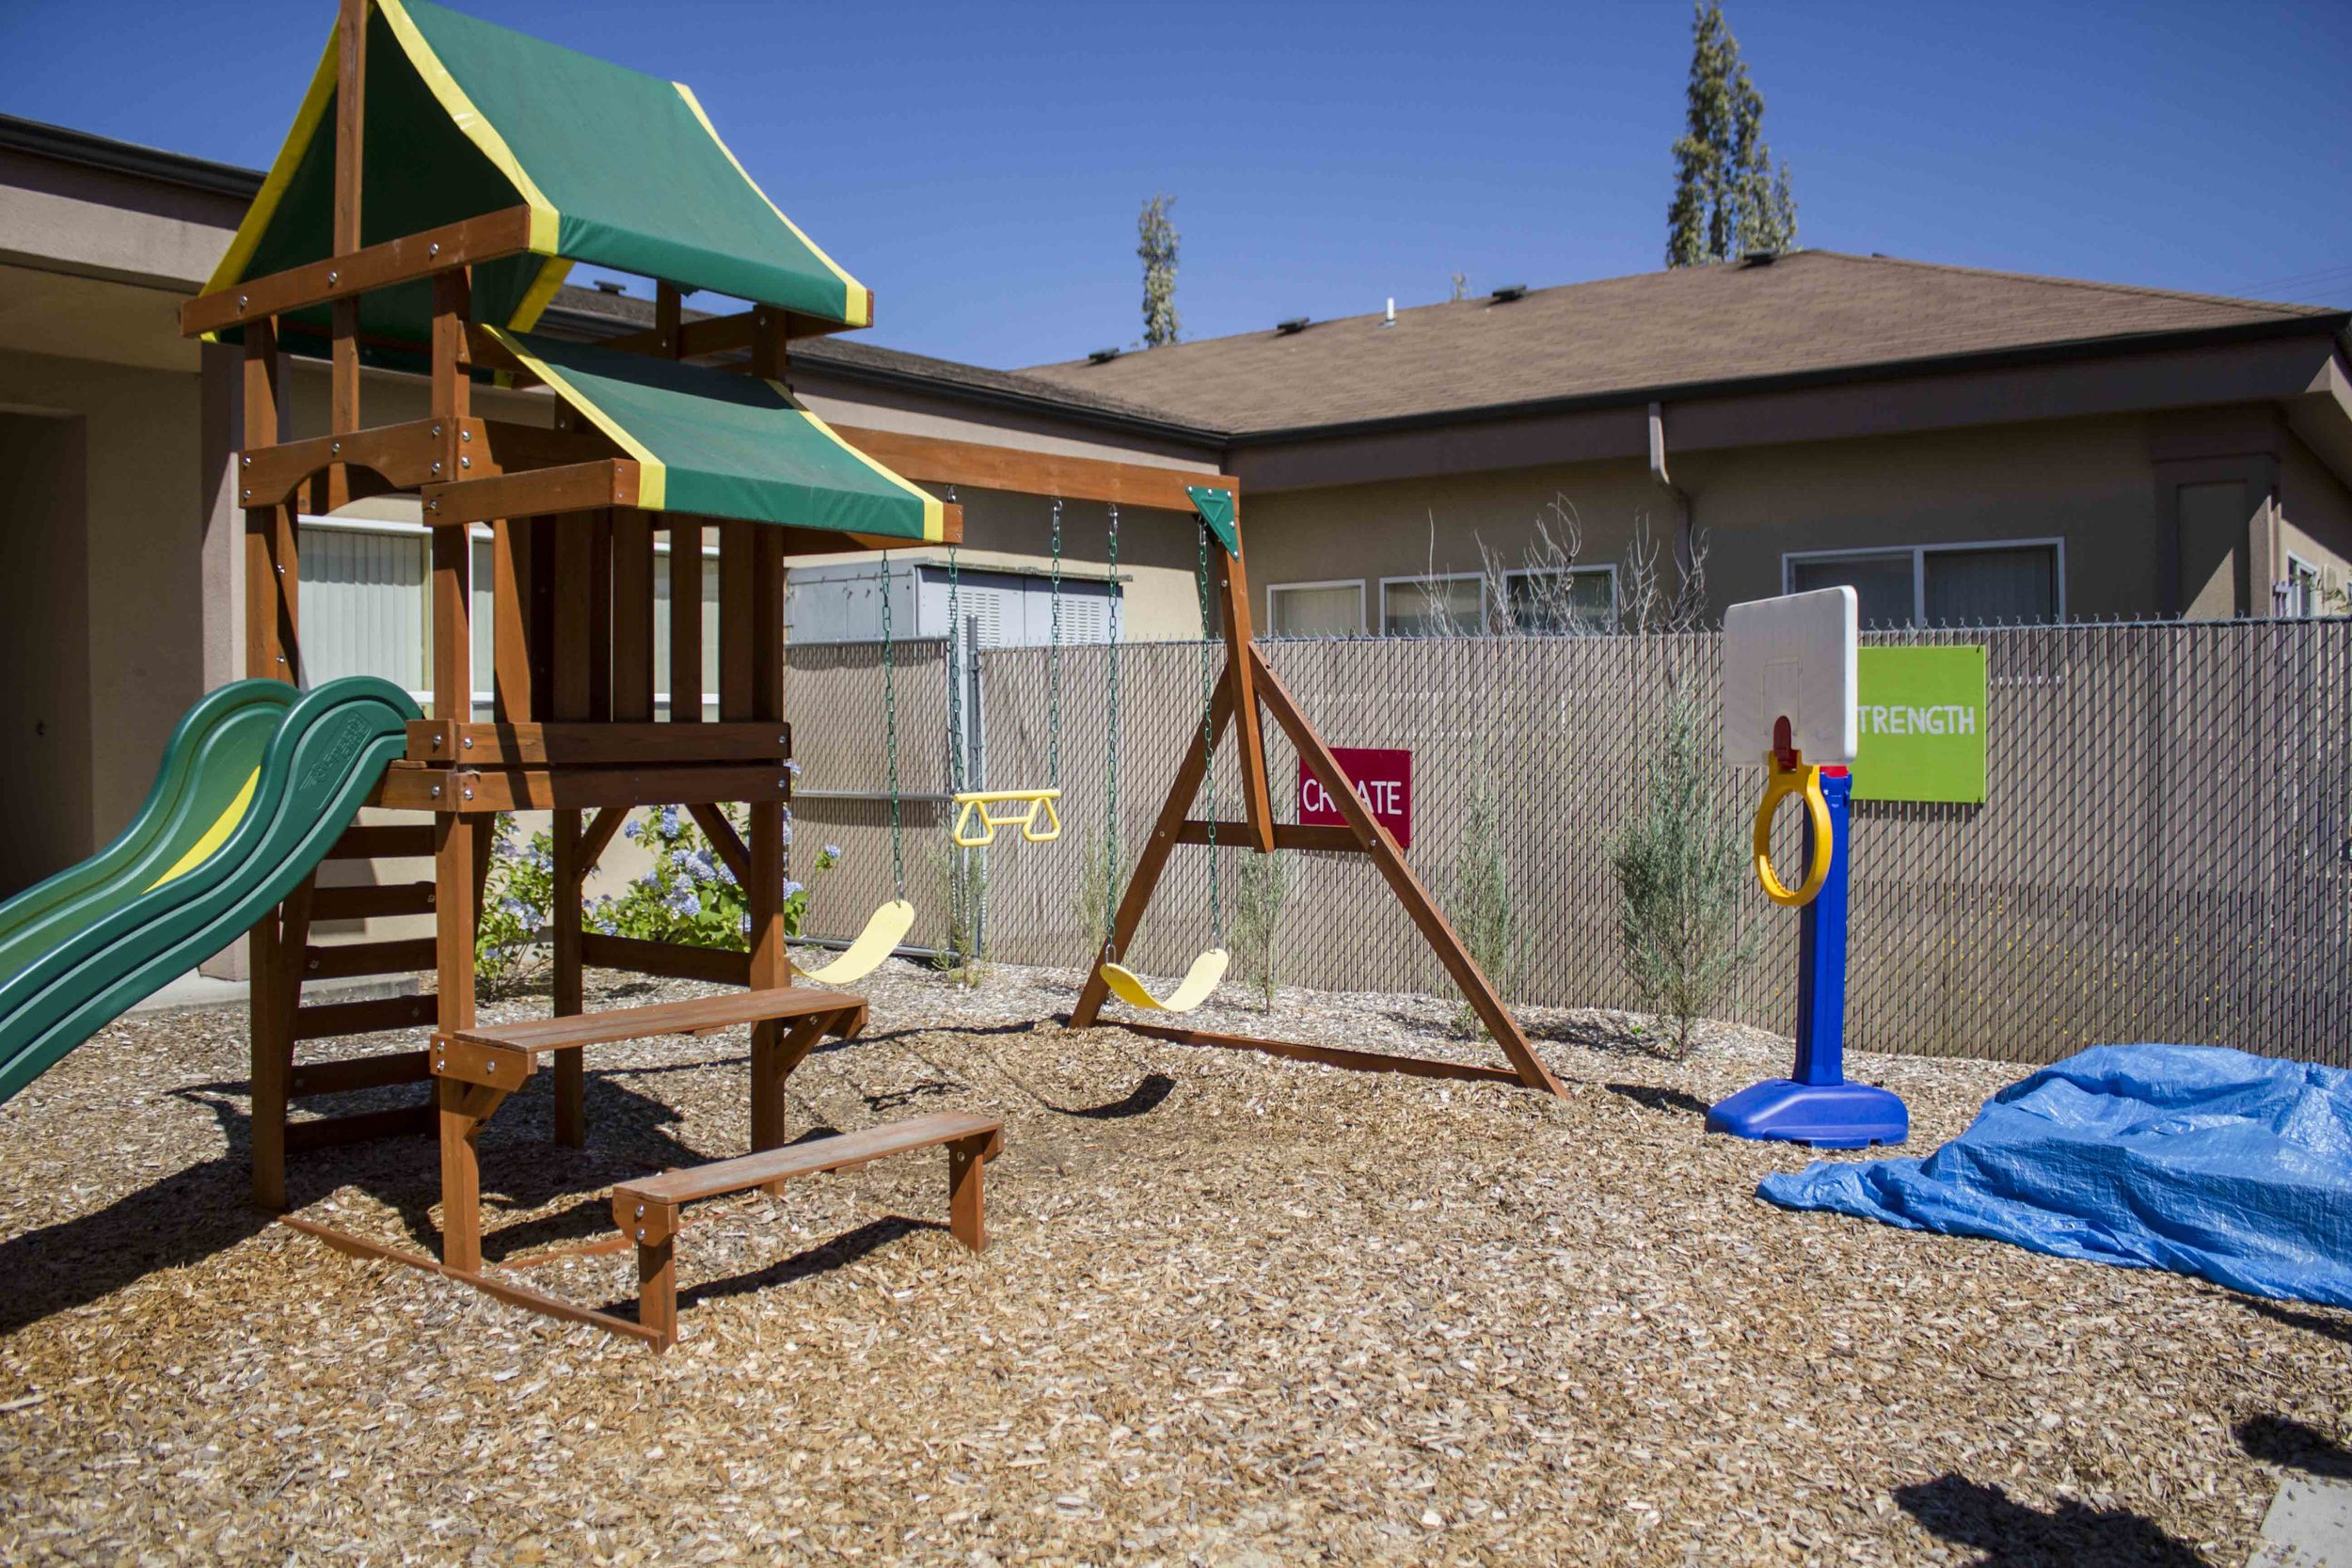 A local bank donated the playground so the kids can have a chance to be kids.